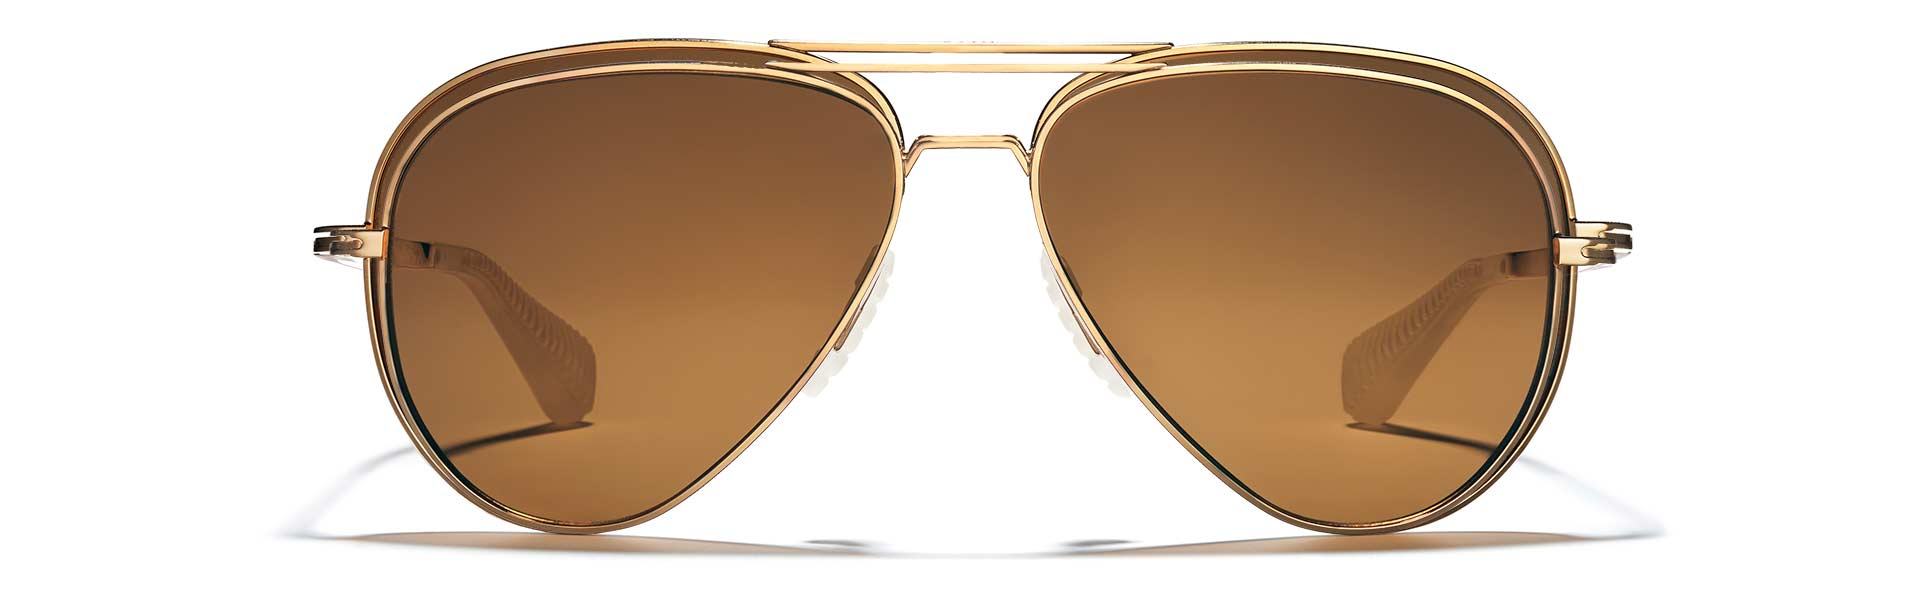 ROKA Phantom Aviator Sizes